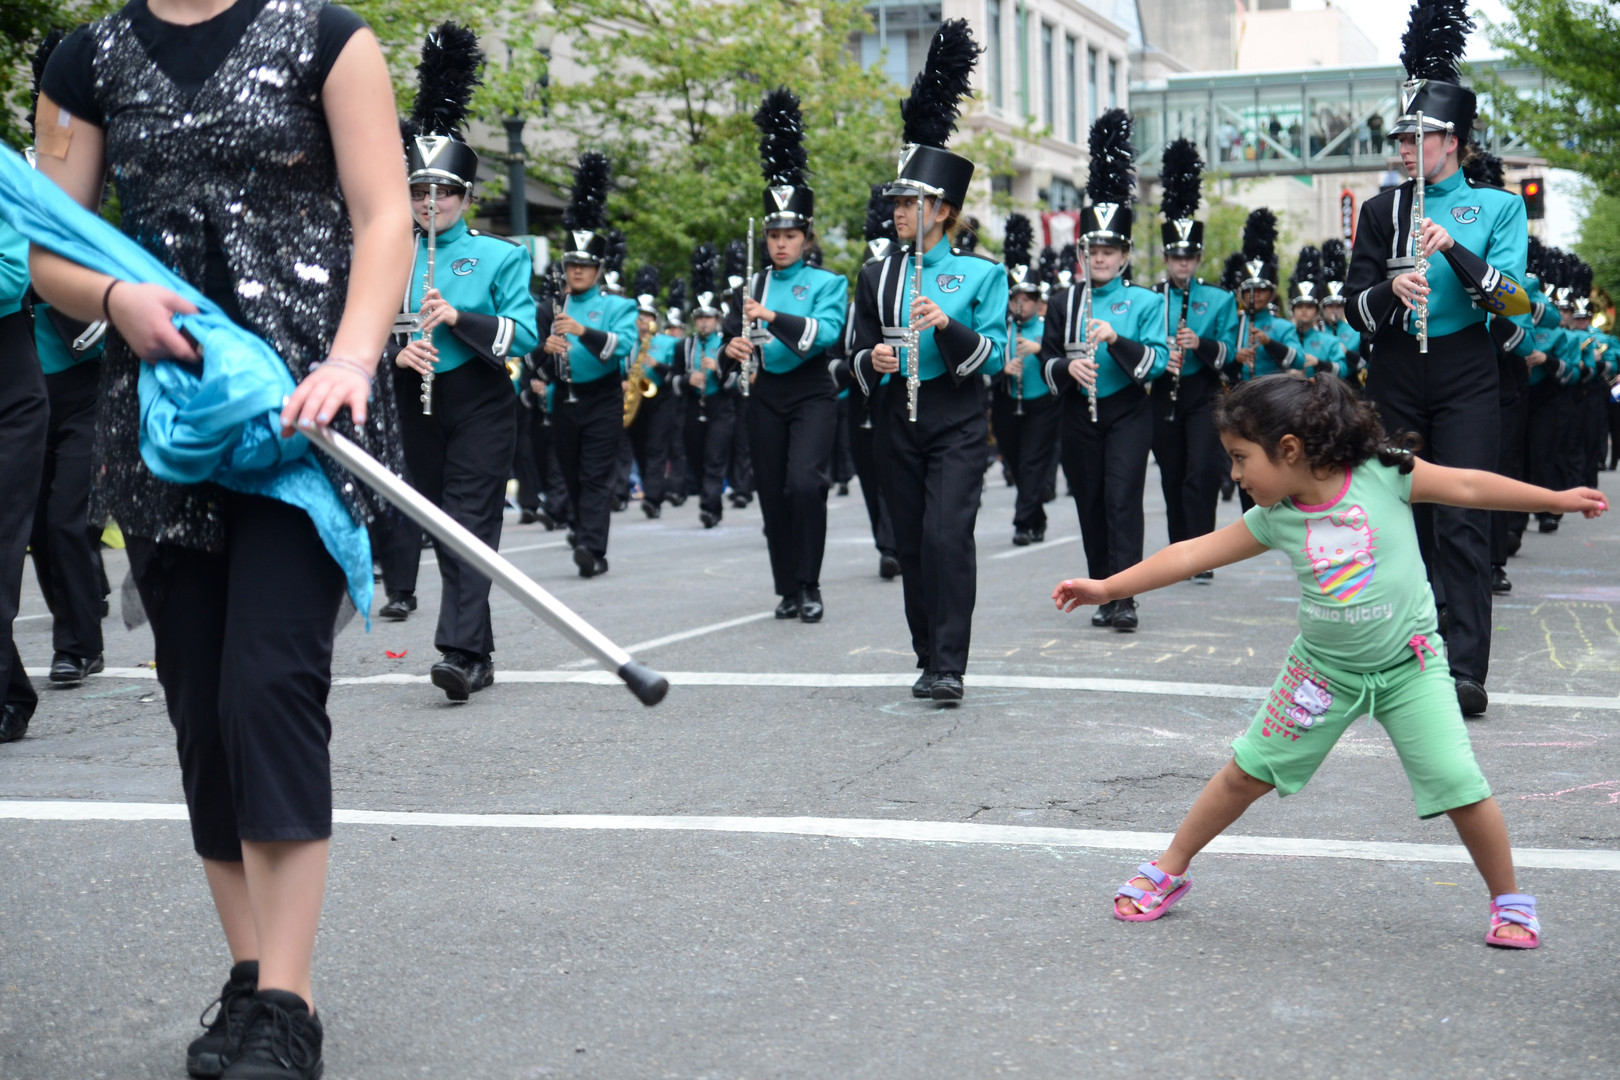 Rehanna Madrigal, 4, dances to the music from the Century High School marching band during the Portland Rose Festival Grand Floral Parade. (The Oregonian)